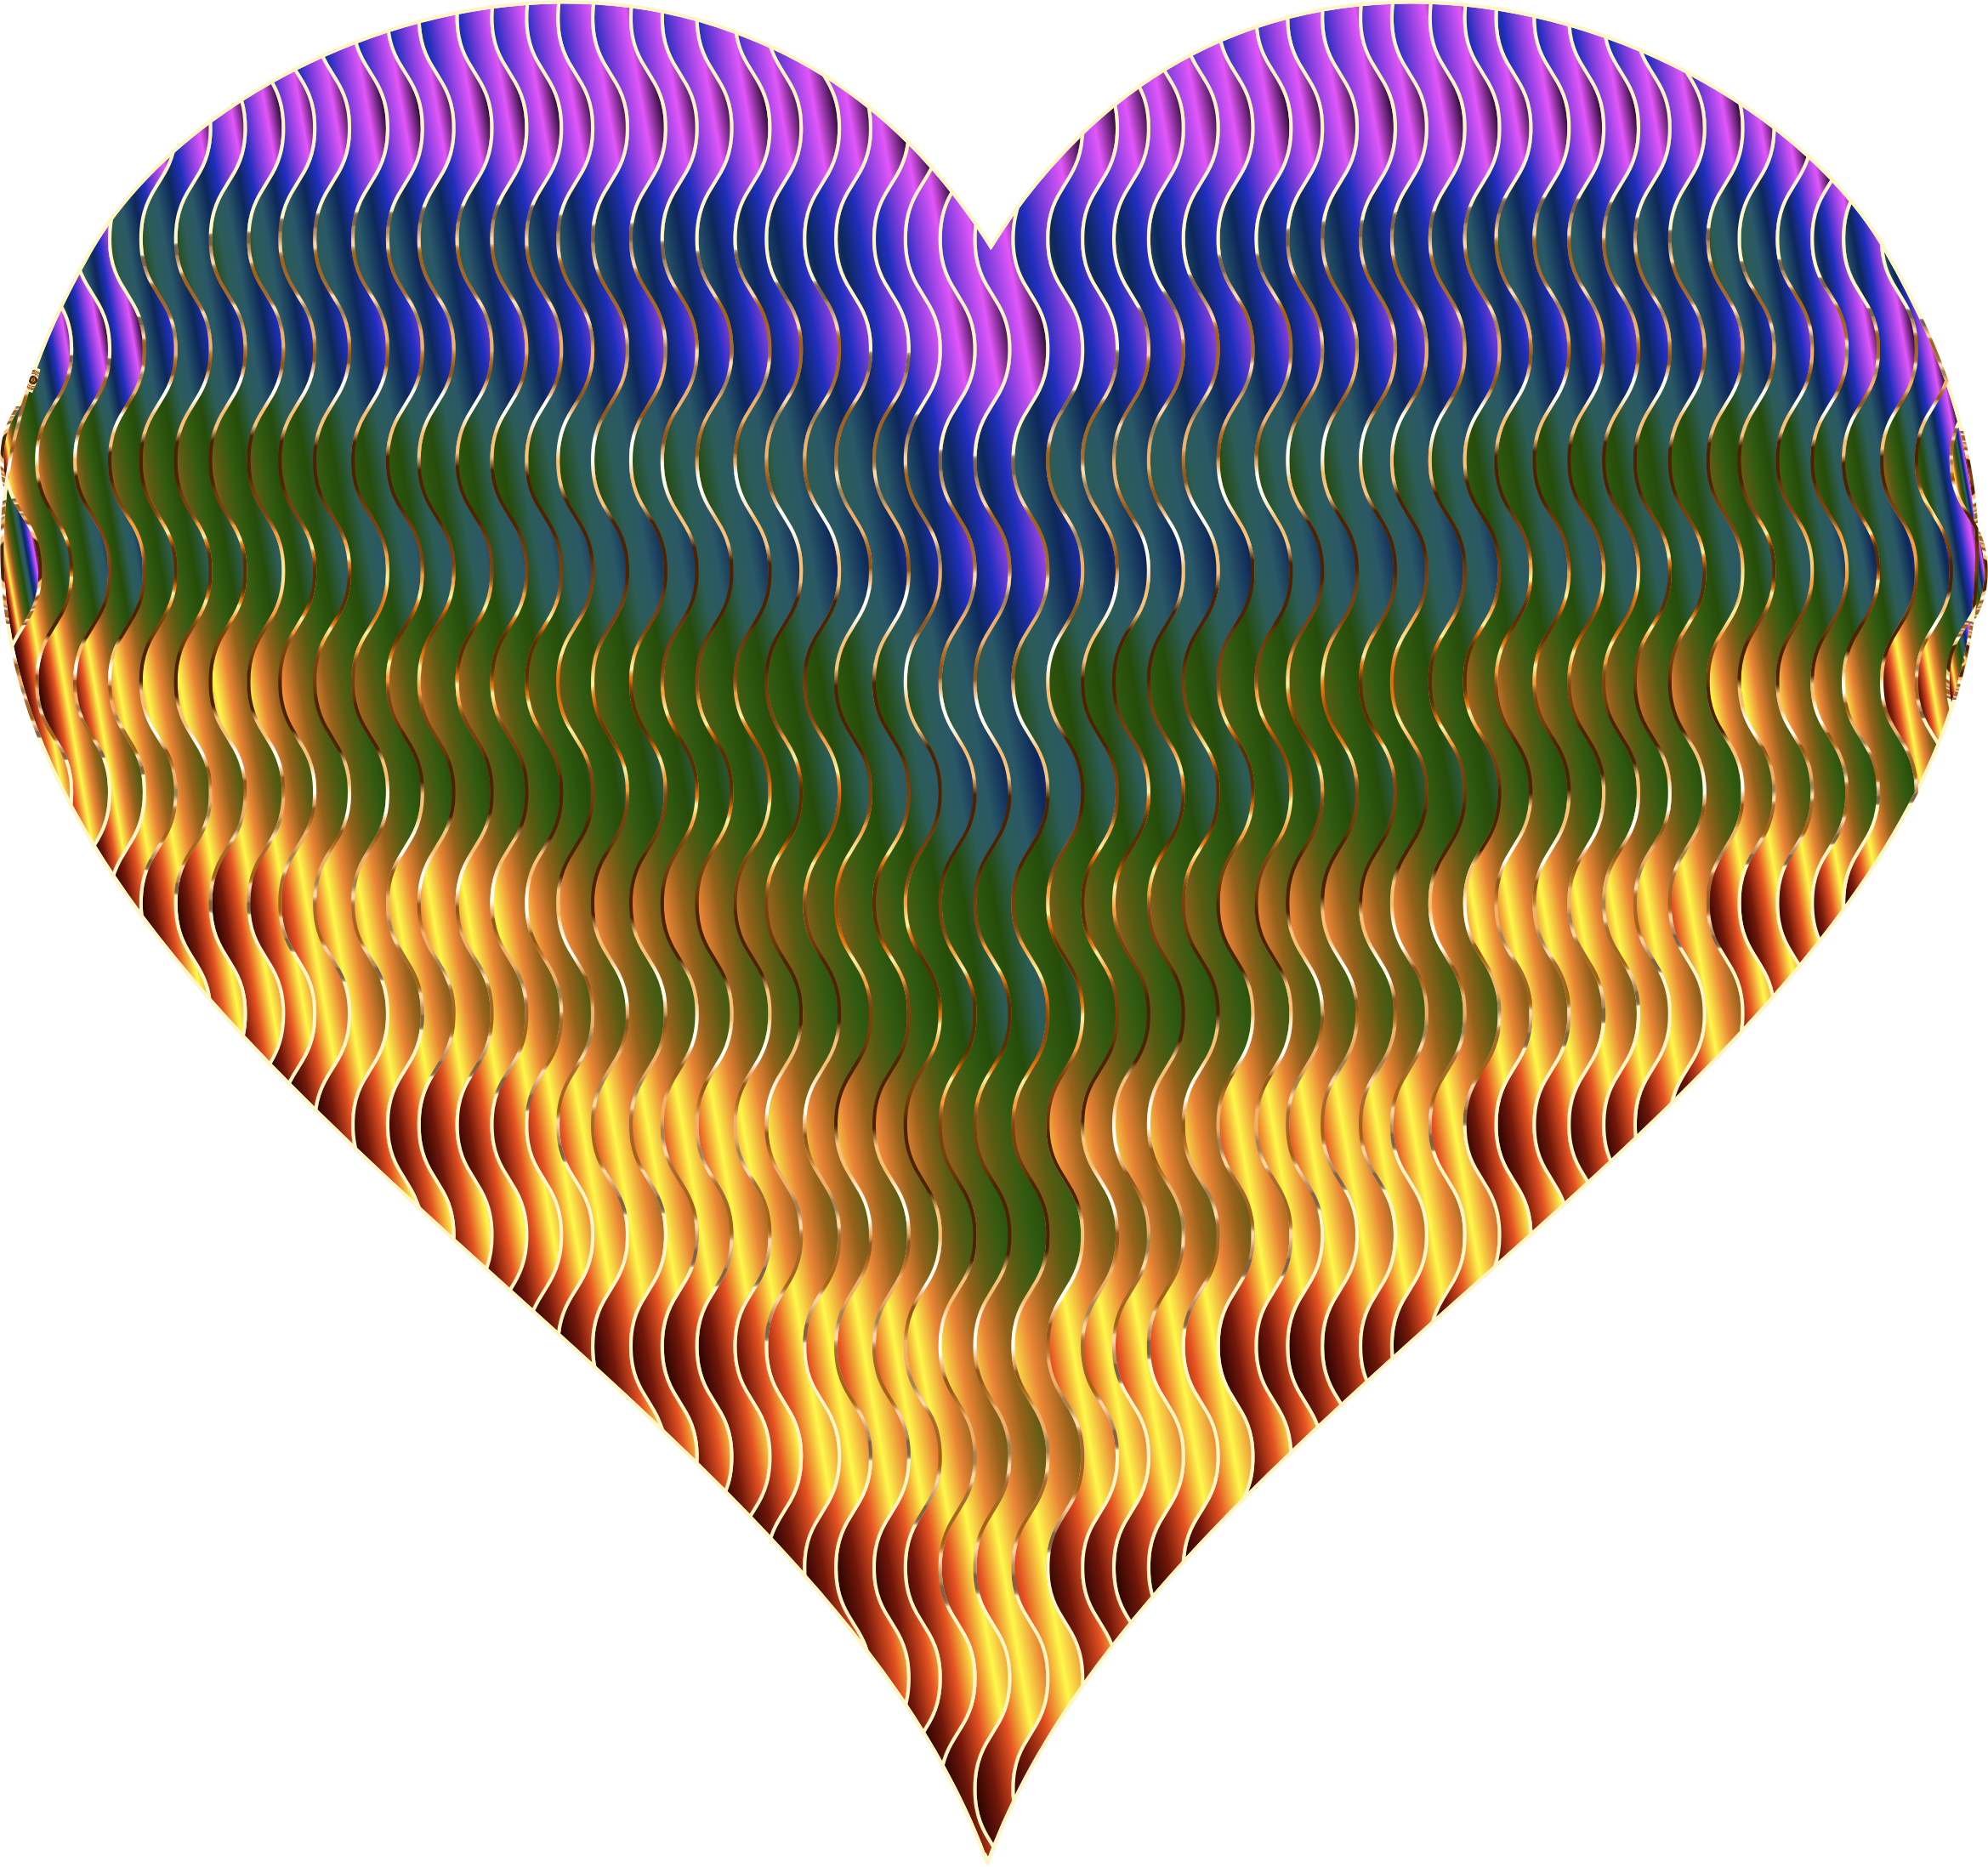 Colorful Wavy Heart 5 Variation 2 by GDJ